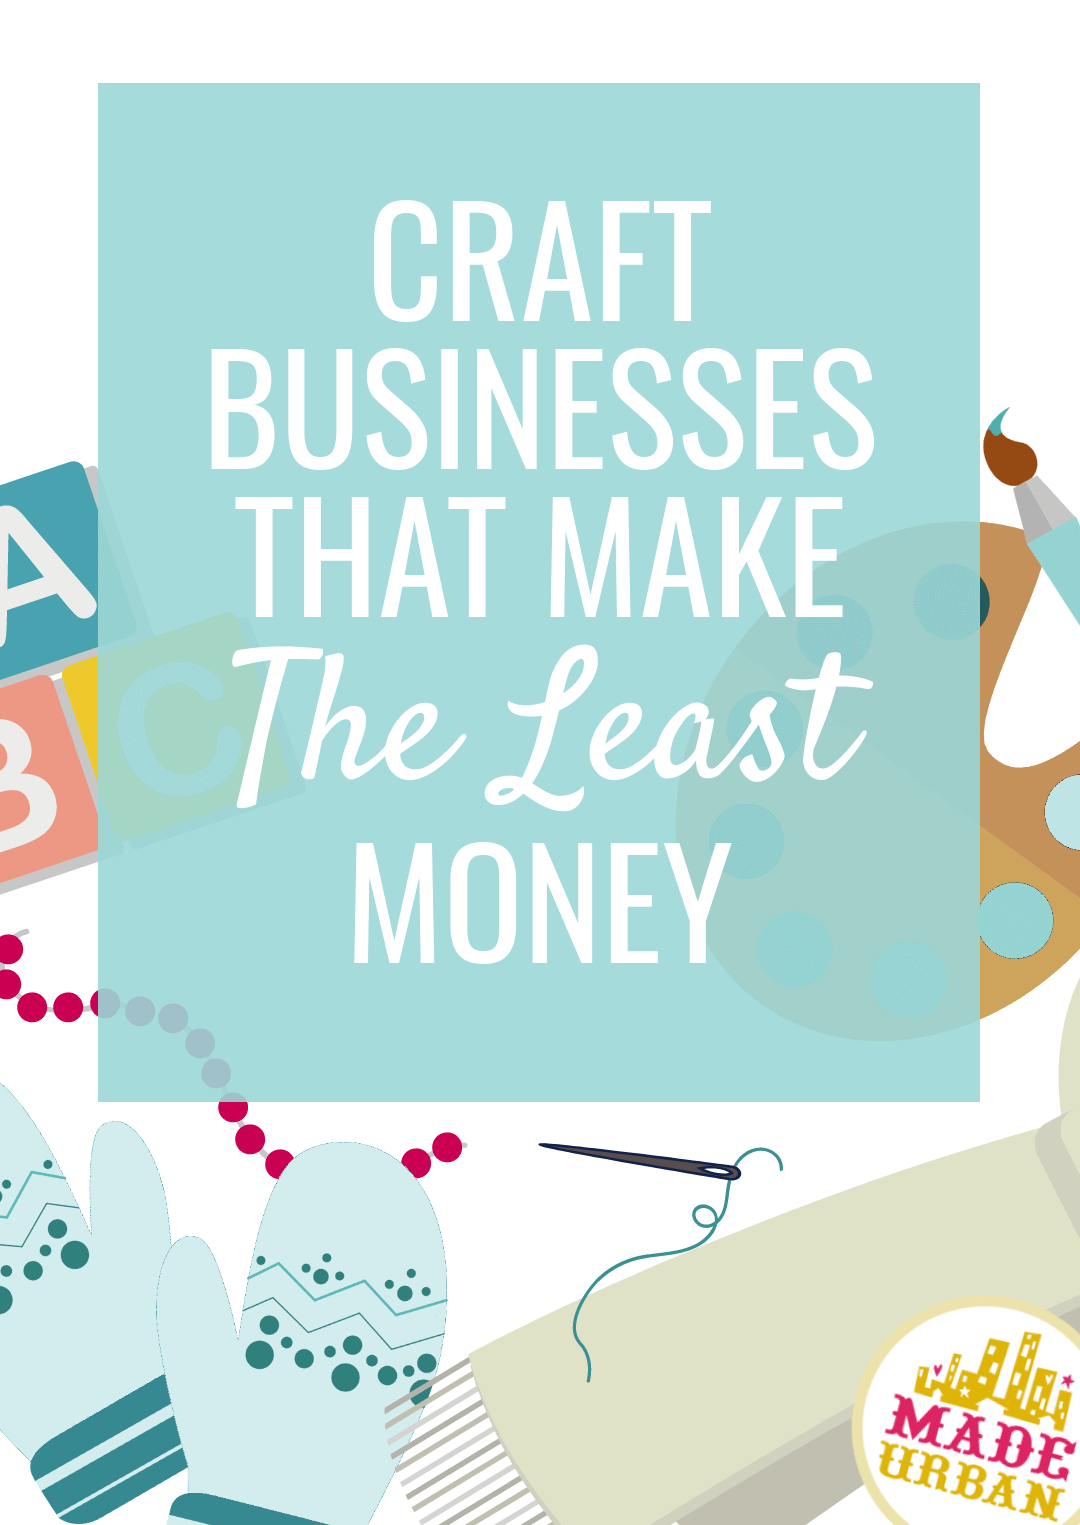 Craft Businesses that Make the LEAST Money